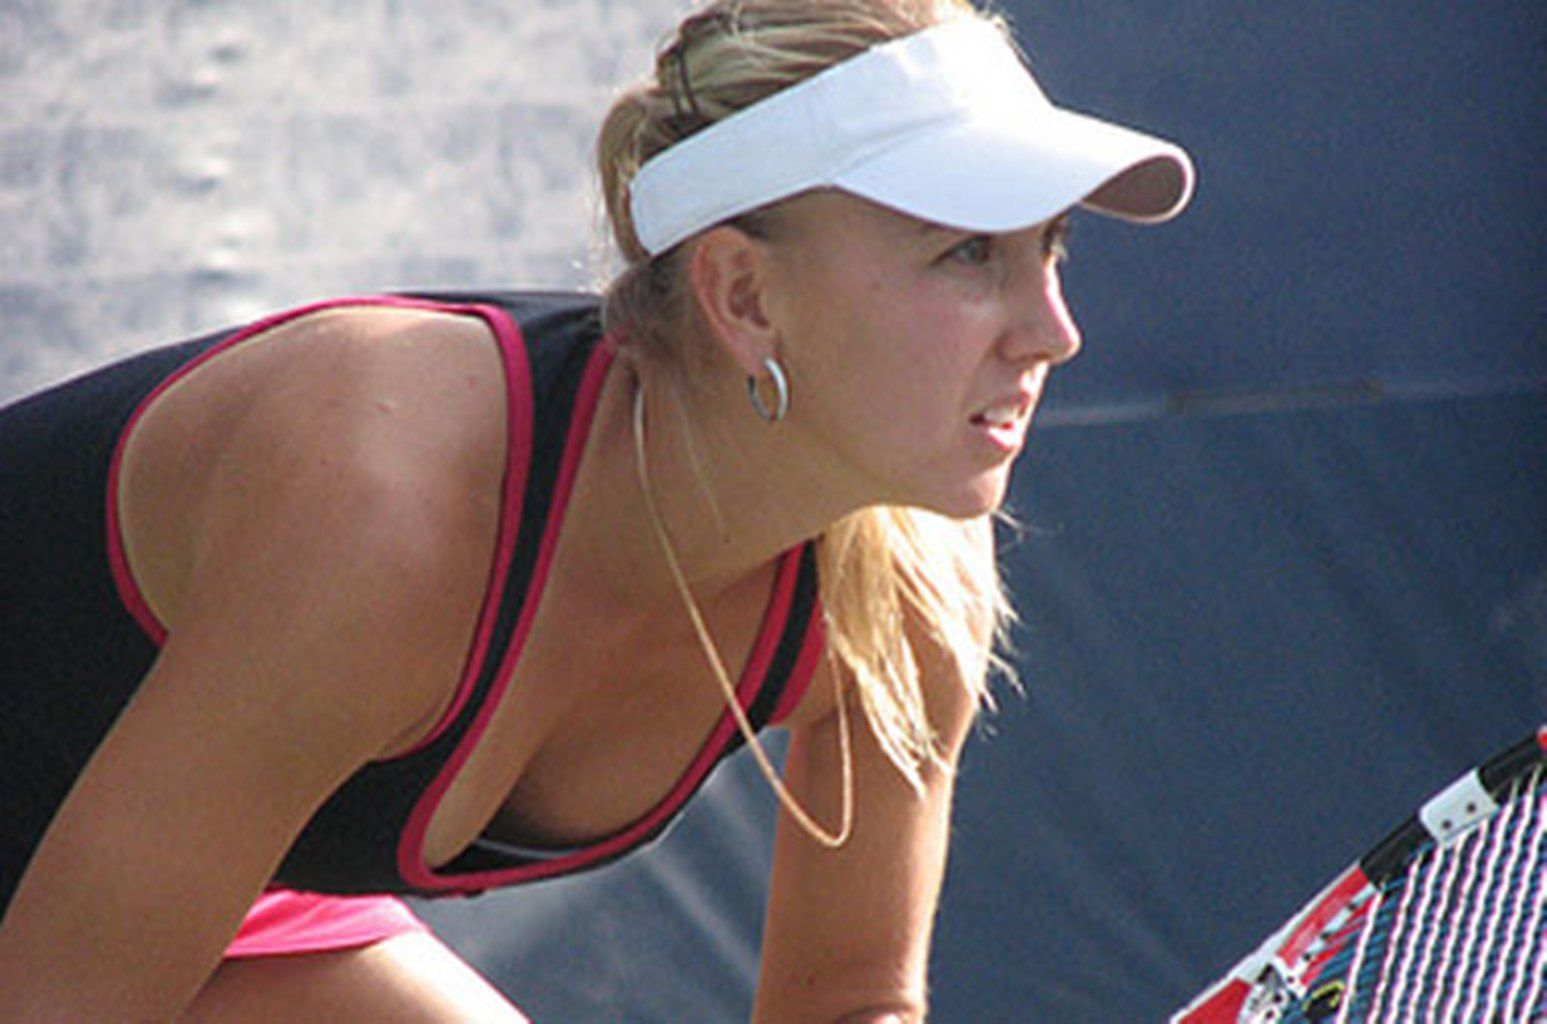 elena vesnina hot photos - photo #21